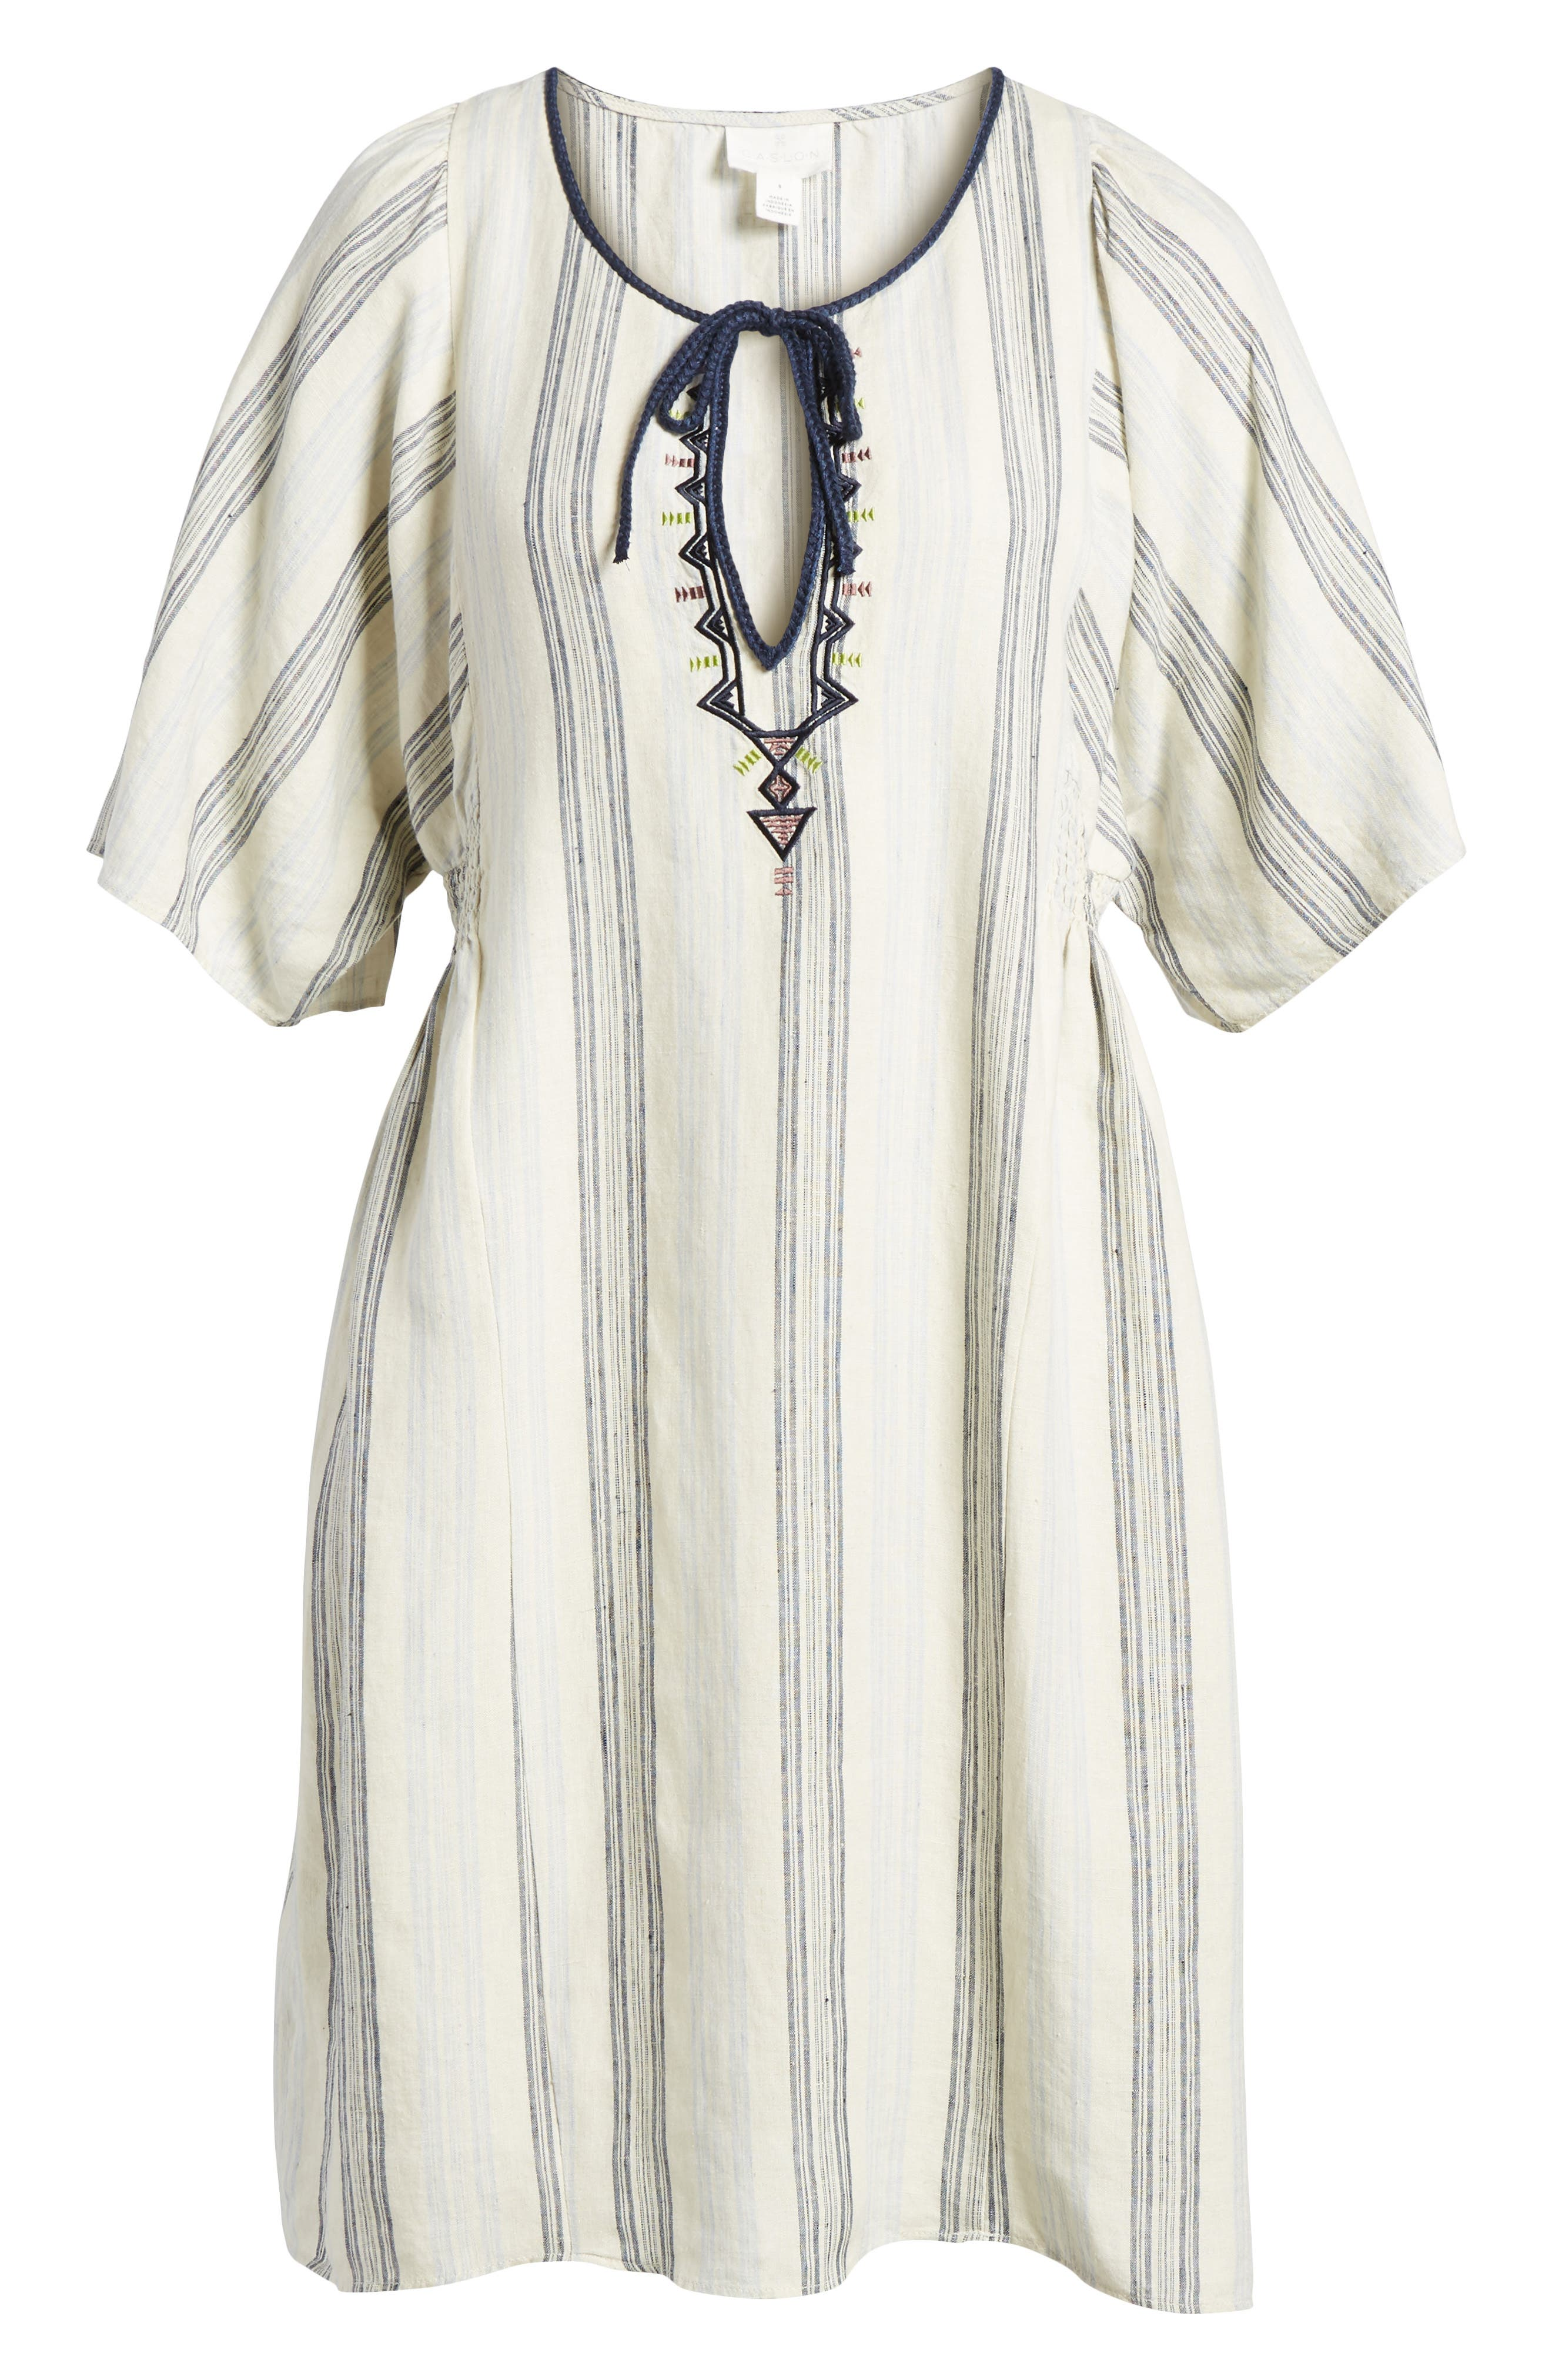 Stripe Linen Keyhole Shift Dress,                             Alternate thumbnail 7, color,                             250